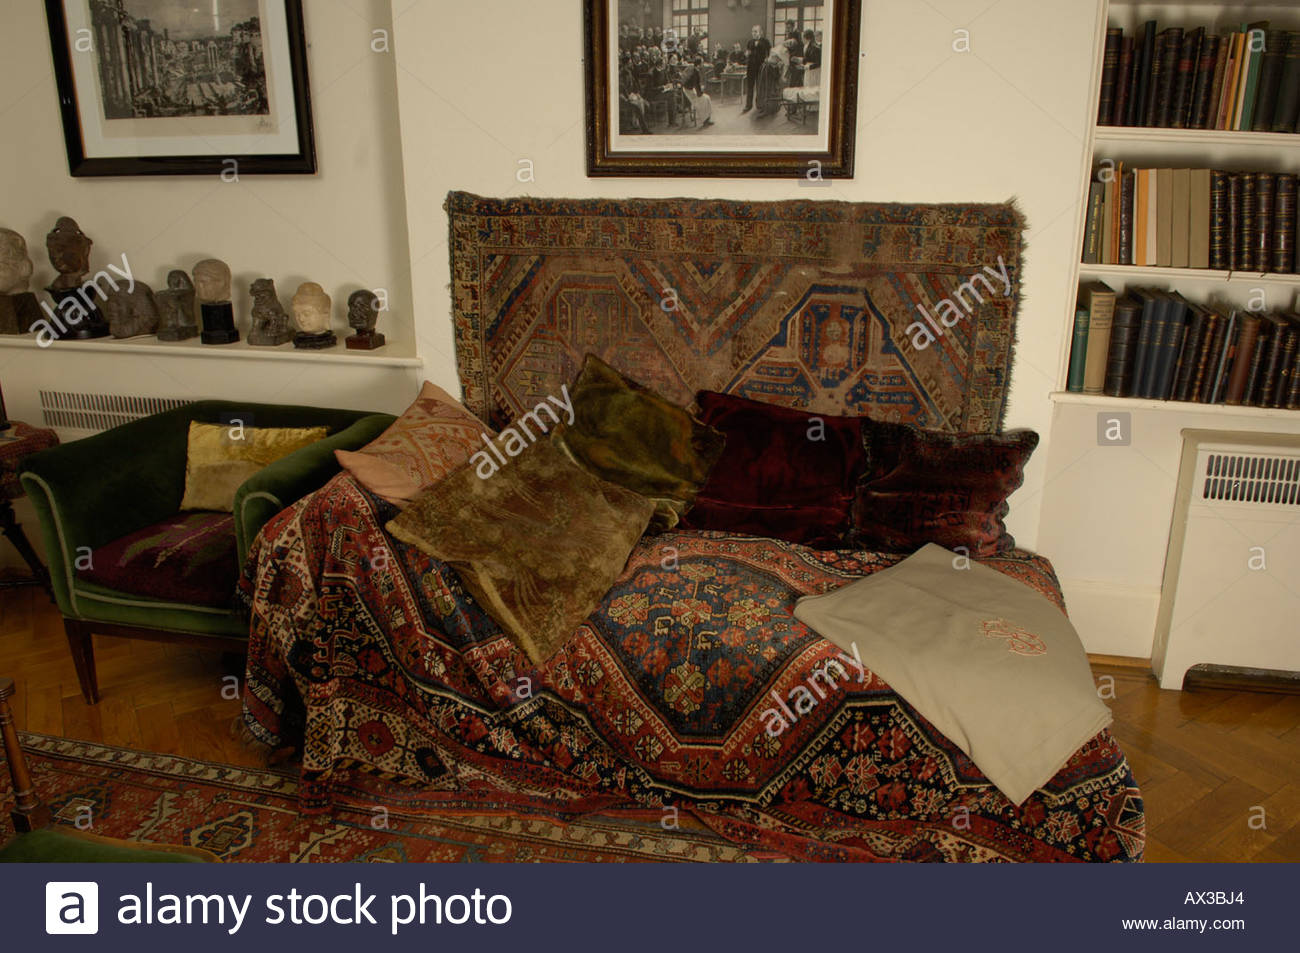 The Sigmund  Freud Museum in London  The couch of Sigmund Freud - Stock Image